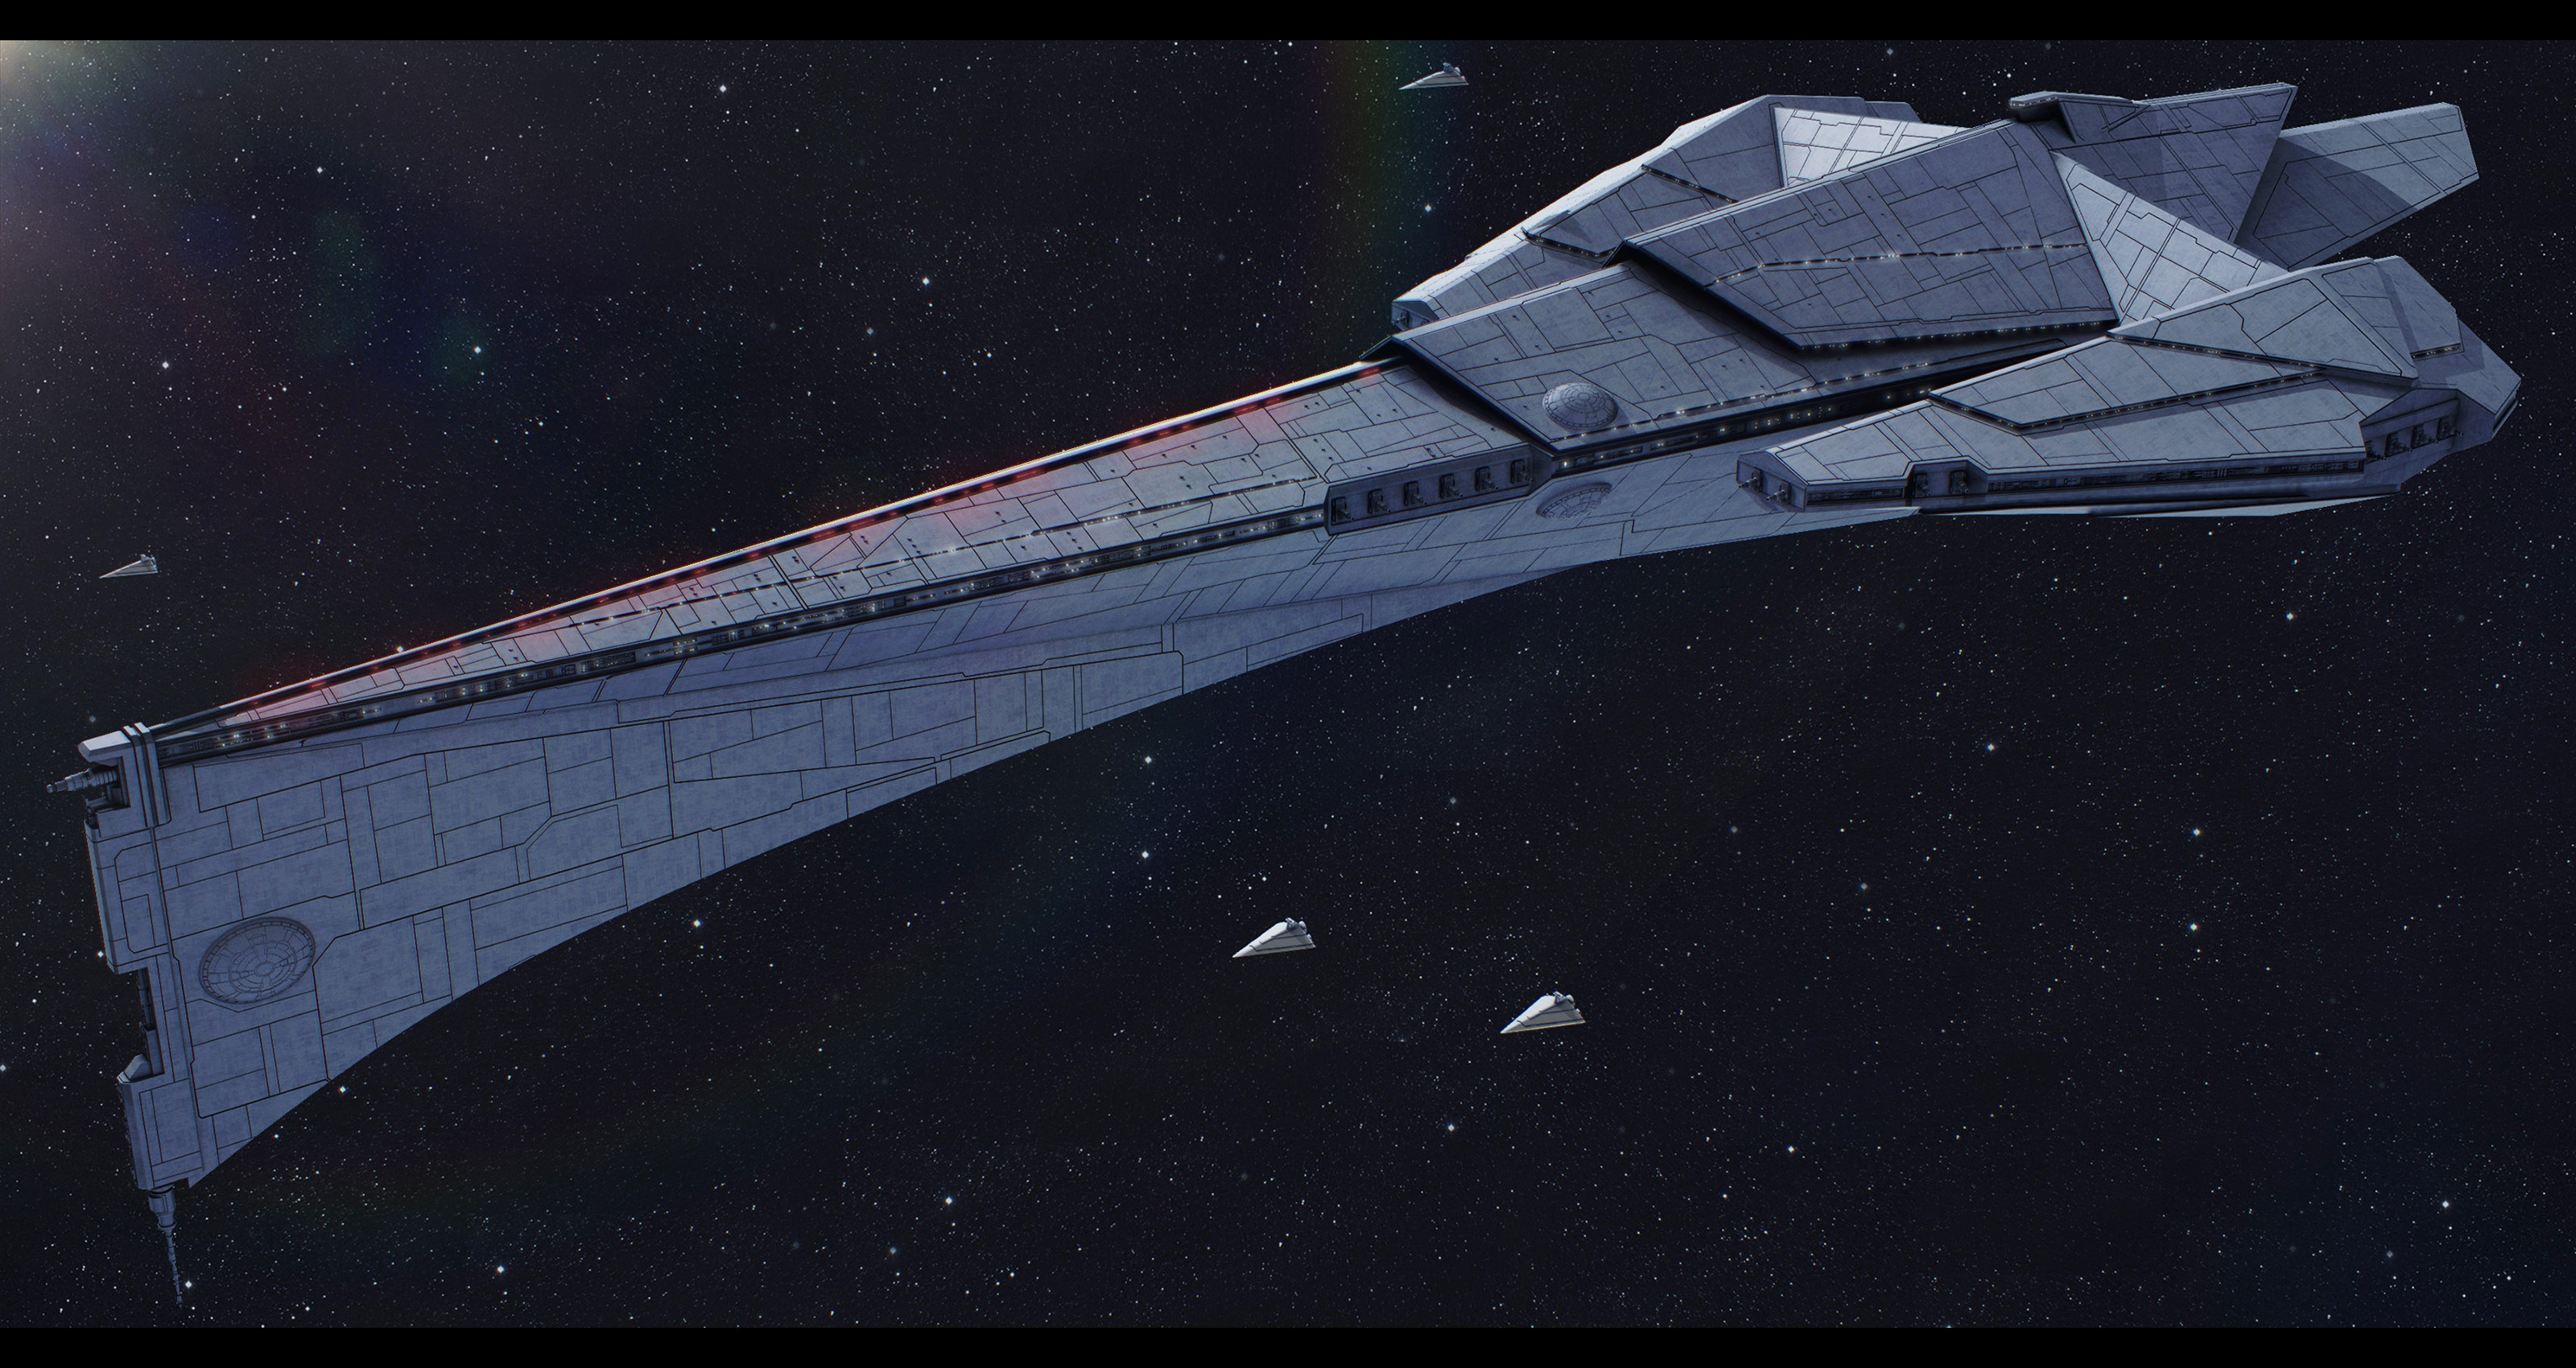 vanguard_class_super_star_destroyer_by_i